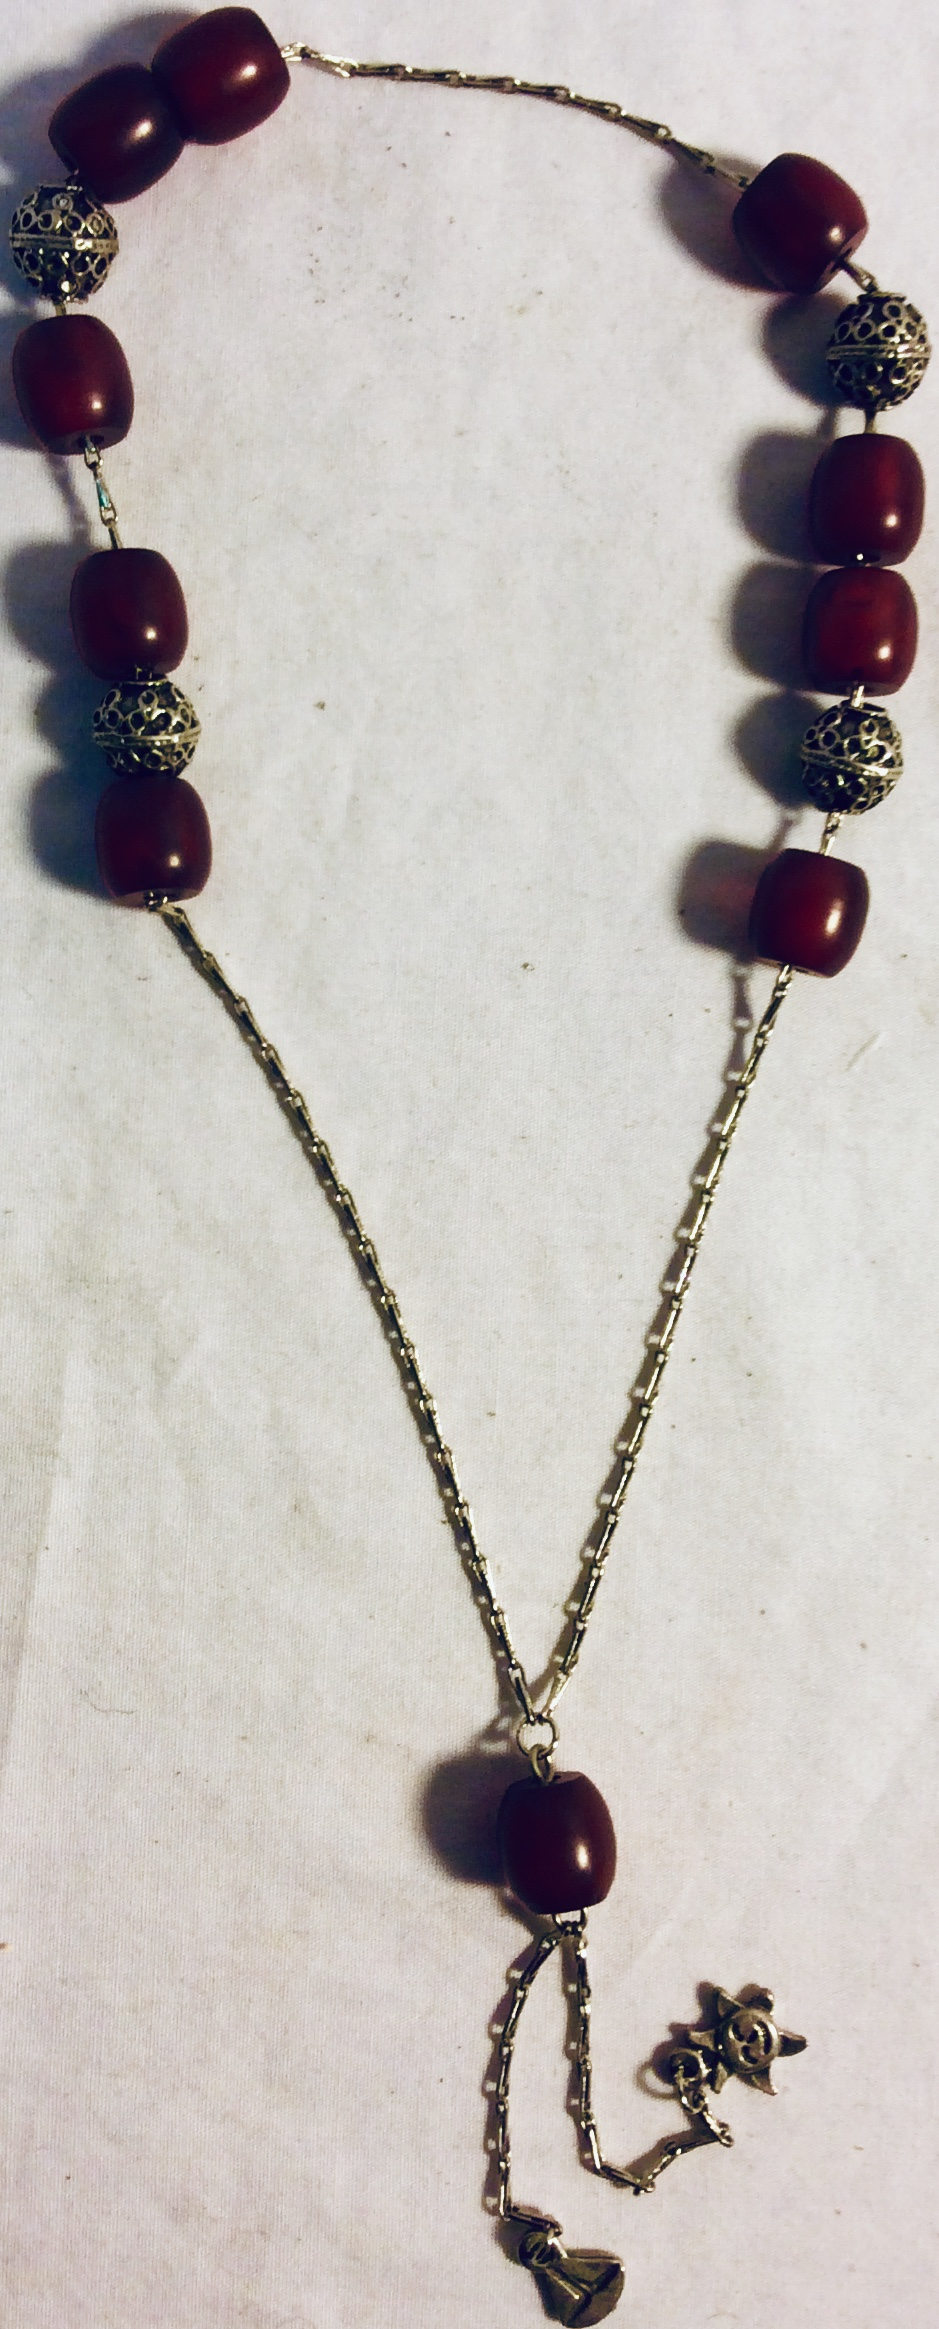 Praying bids in silver and burgundy beads